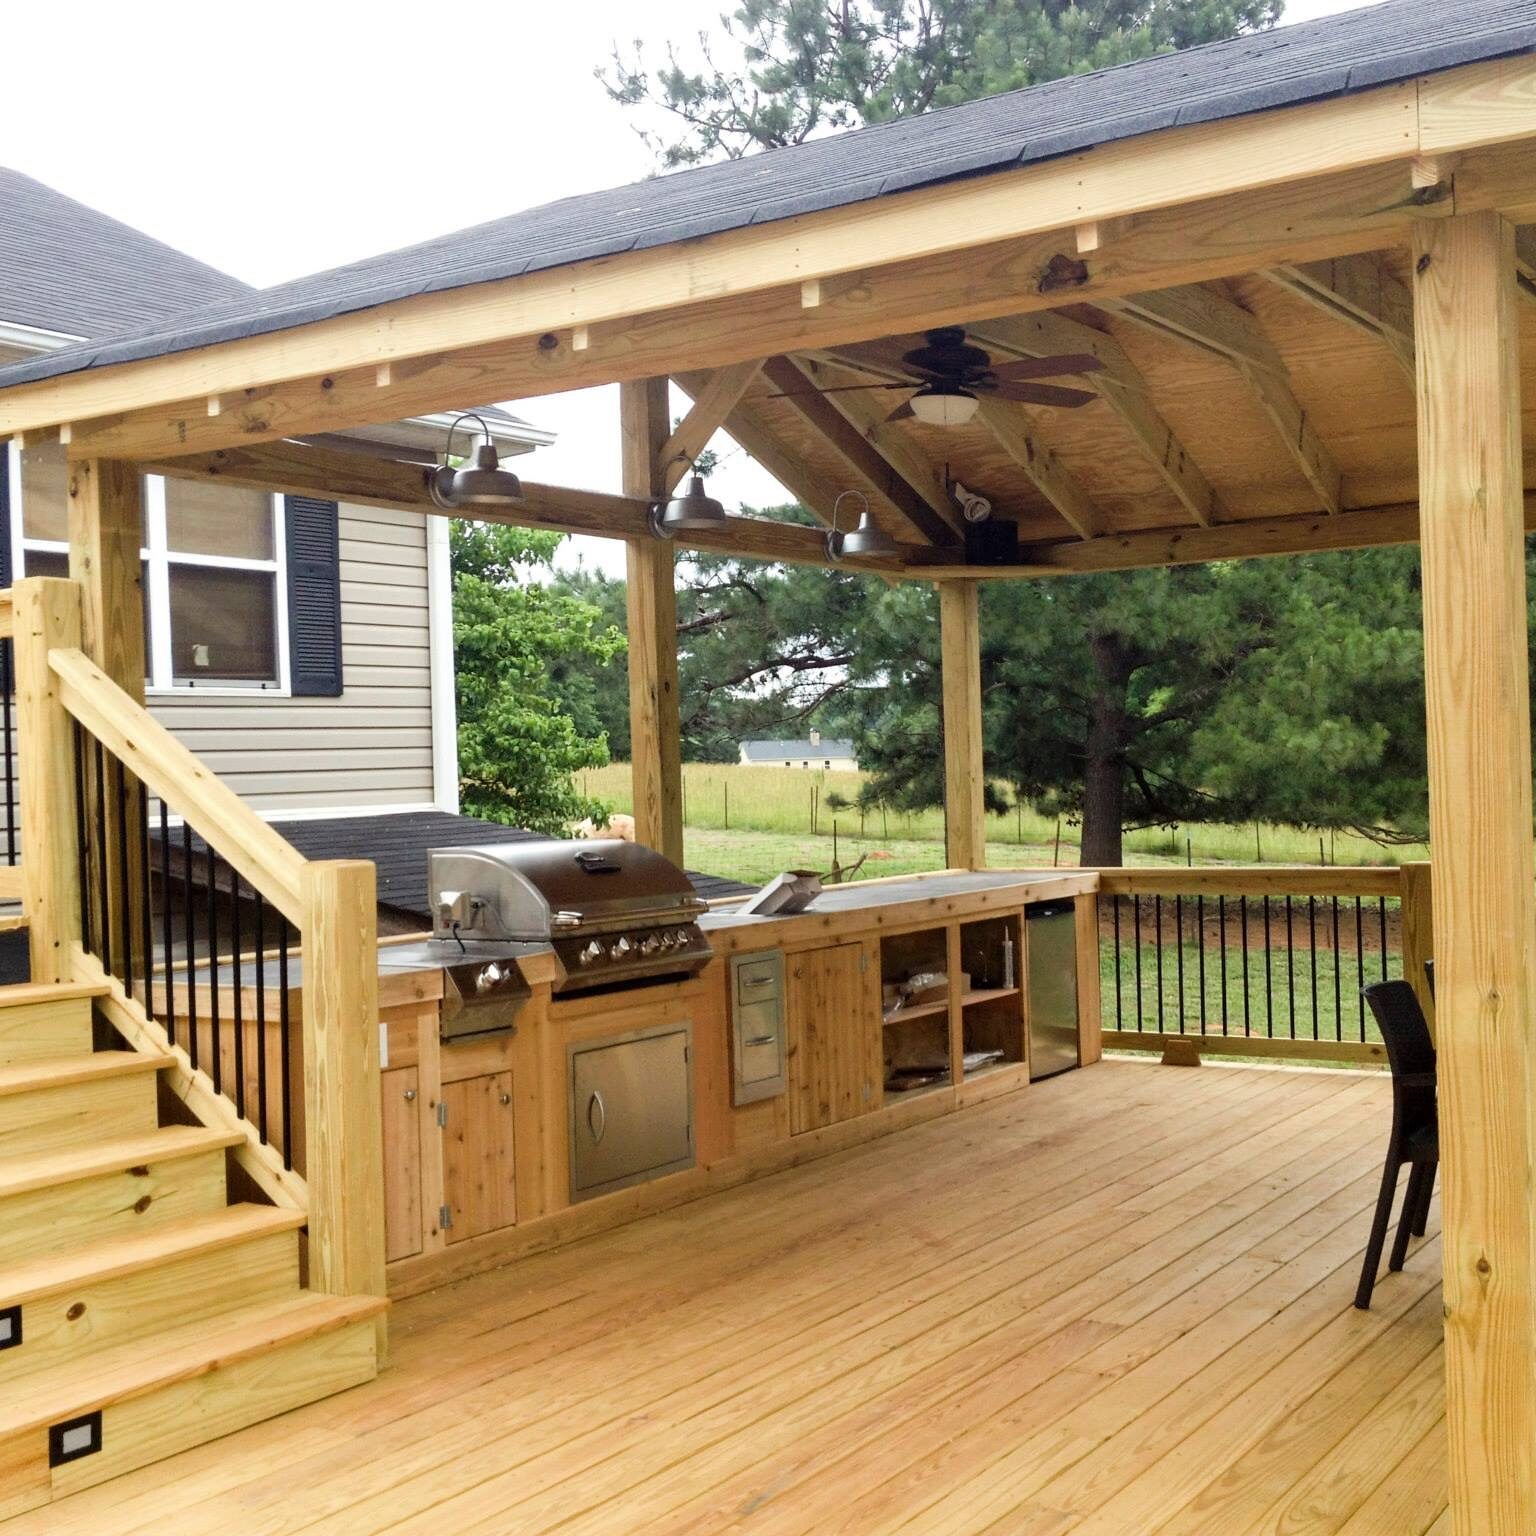 grillout patio